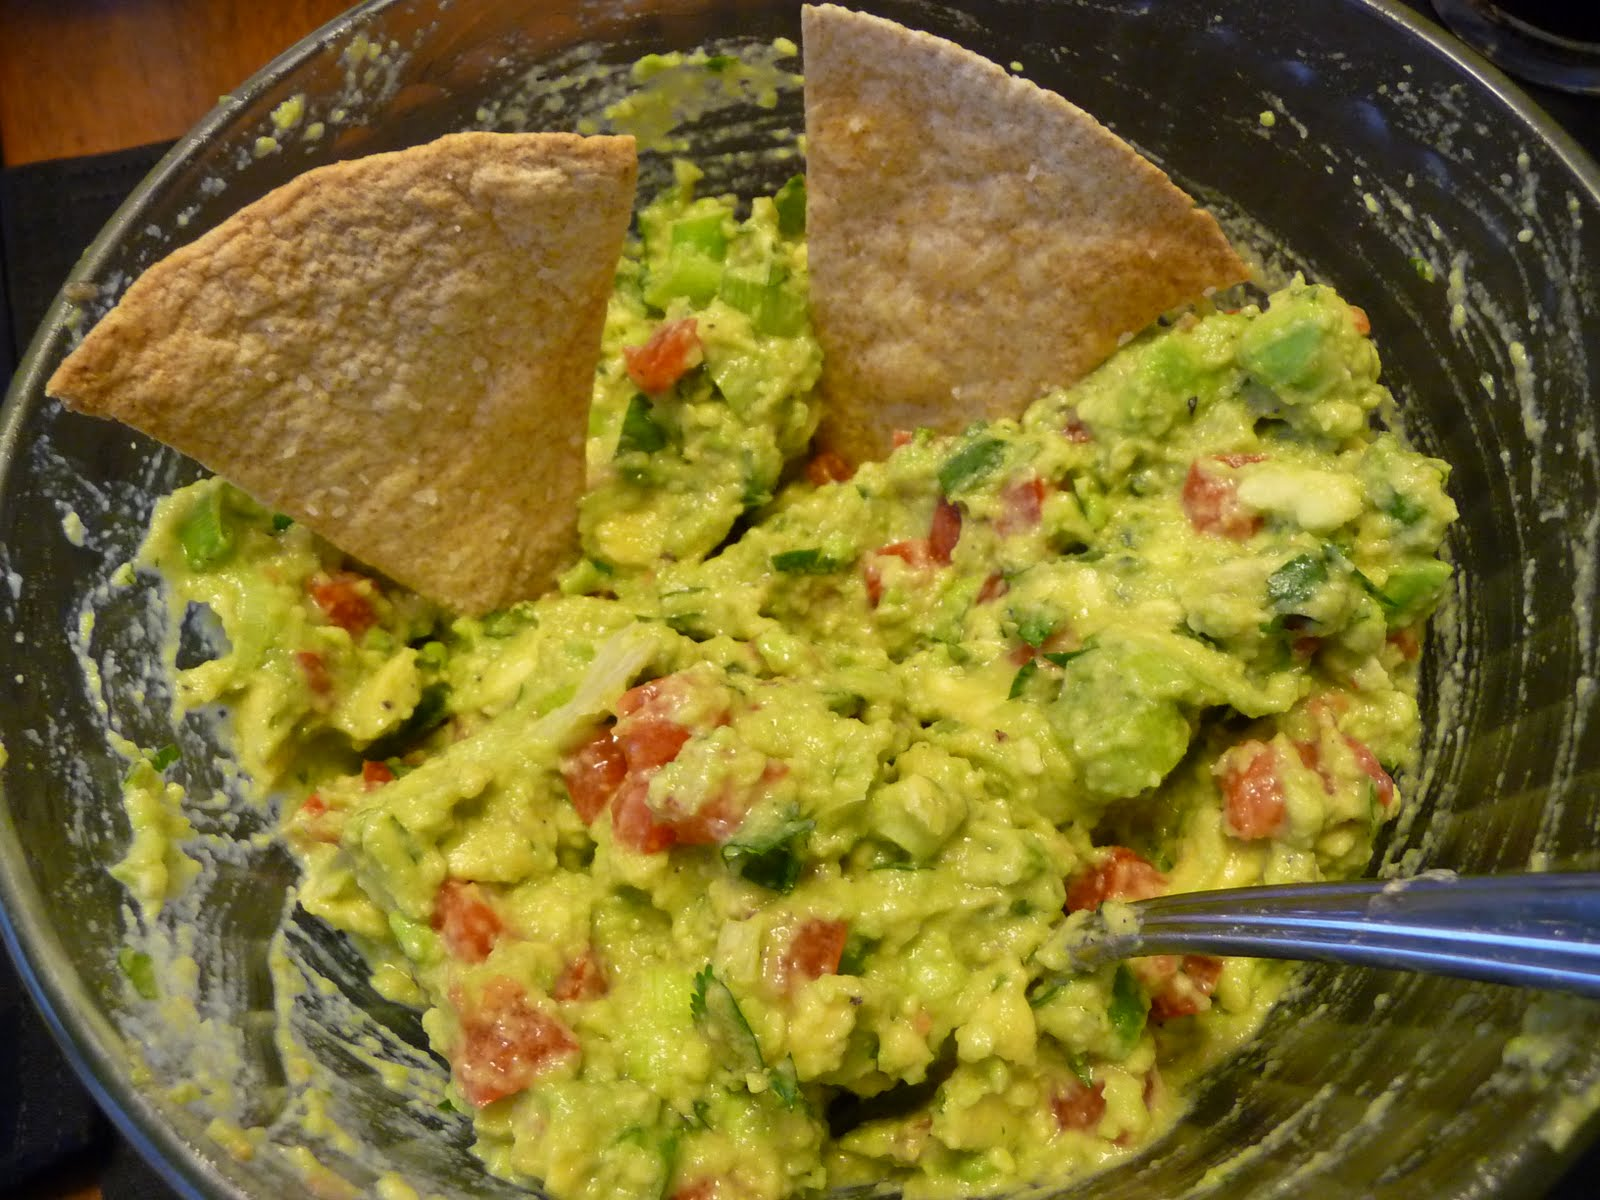 What's Brewing in the Kitchen: Turkey Taco Burgers with Guacamole